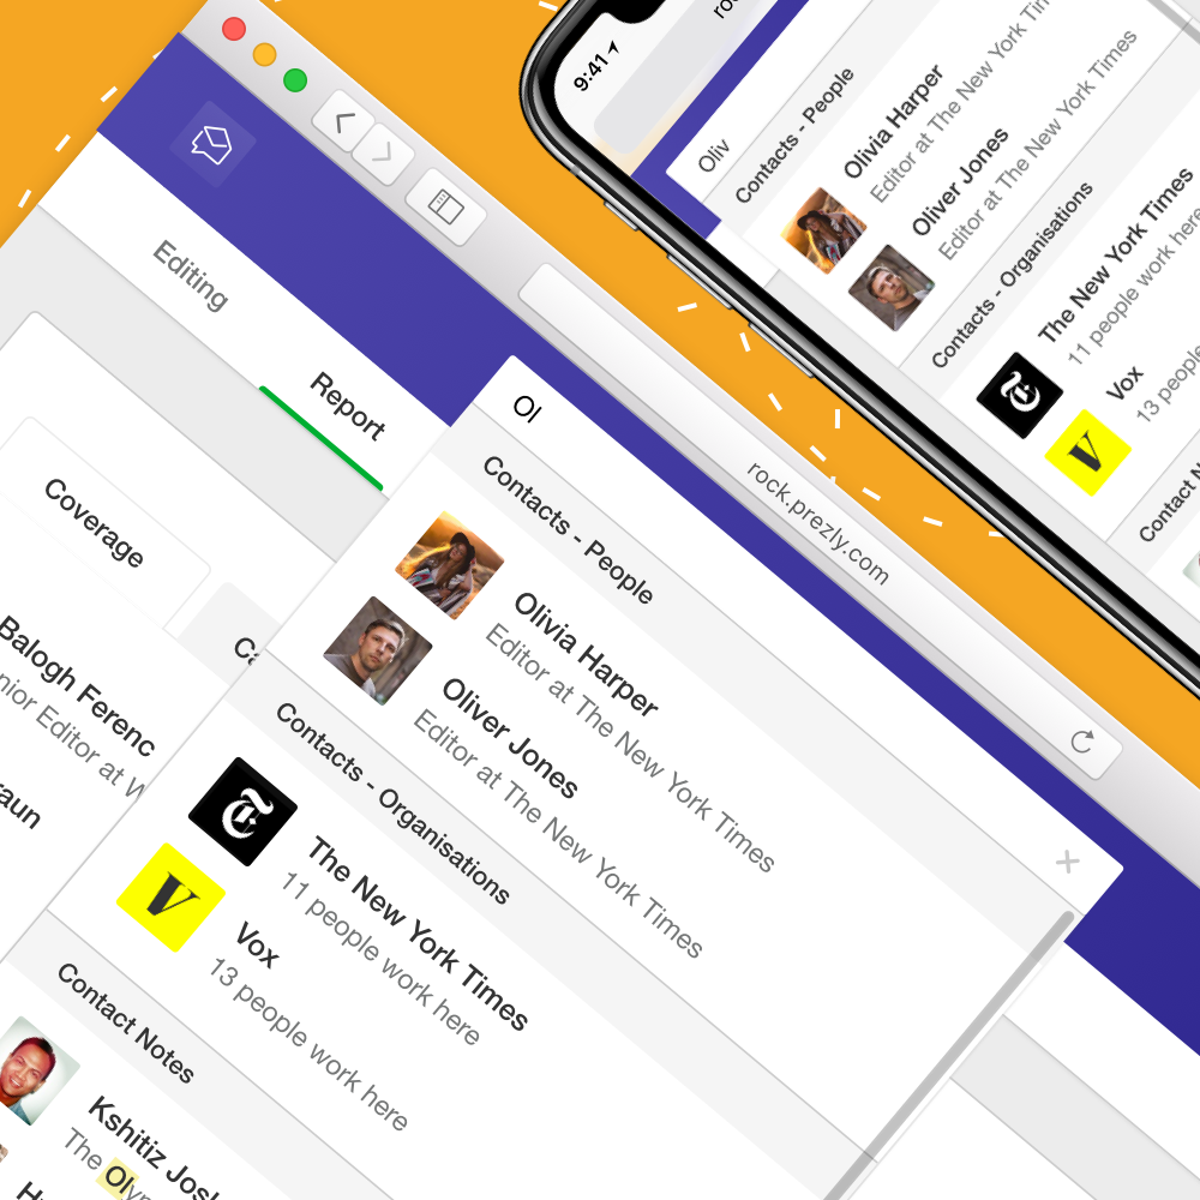 News: Search Notes, Stories, Campaigns, Pitches, and more...